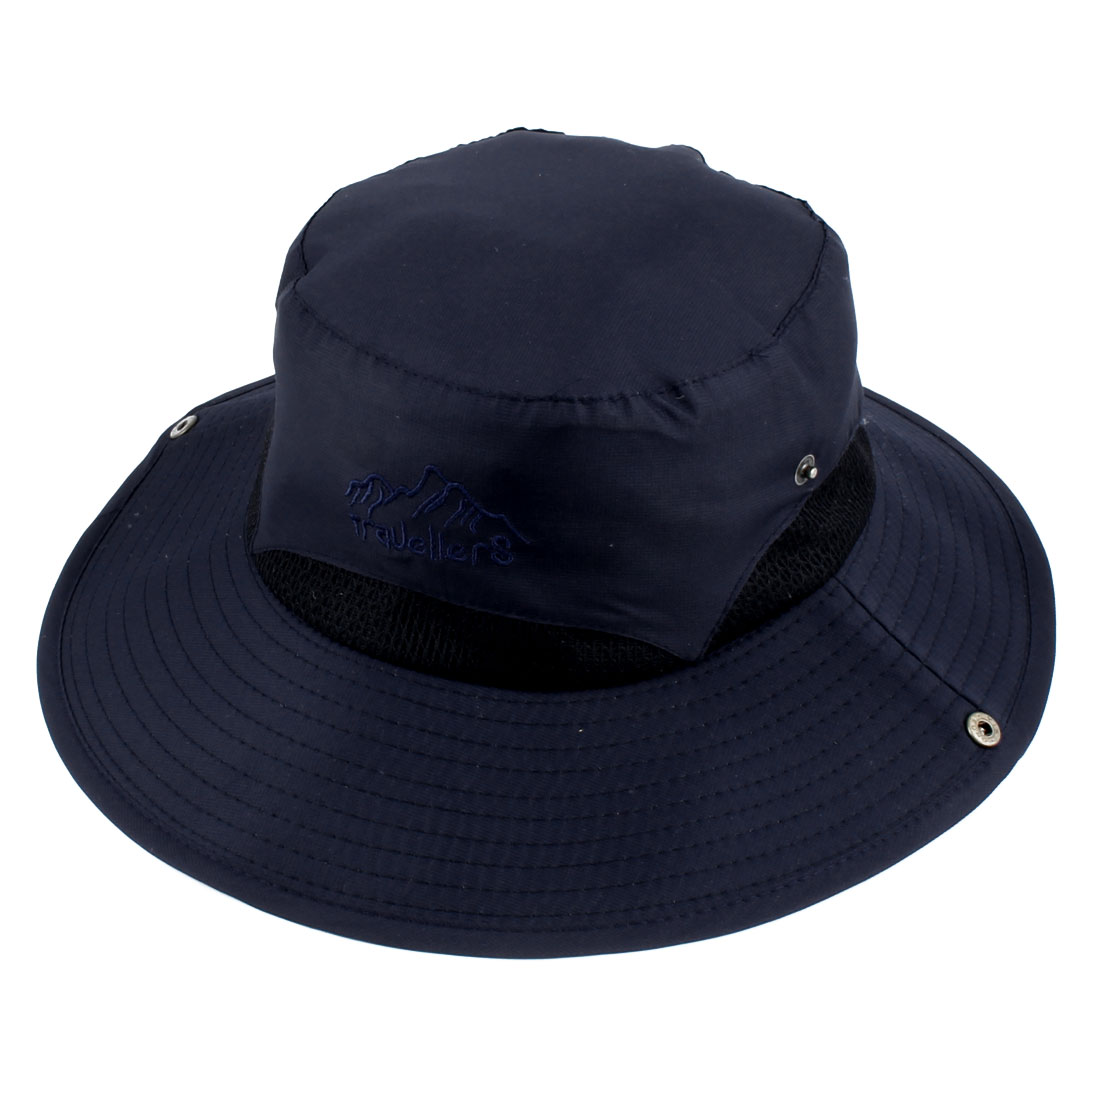 Ladies Women Polyester Foldable Head Decor Summer Protective Traveling Wide Brim Sun Cap Beach Fishing Hat Navy Blue